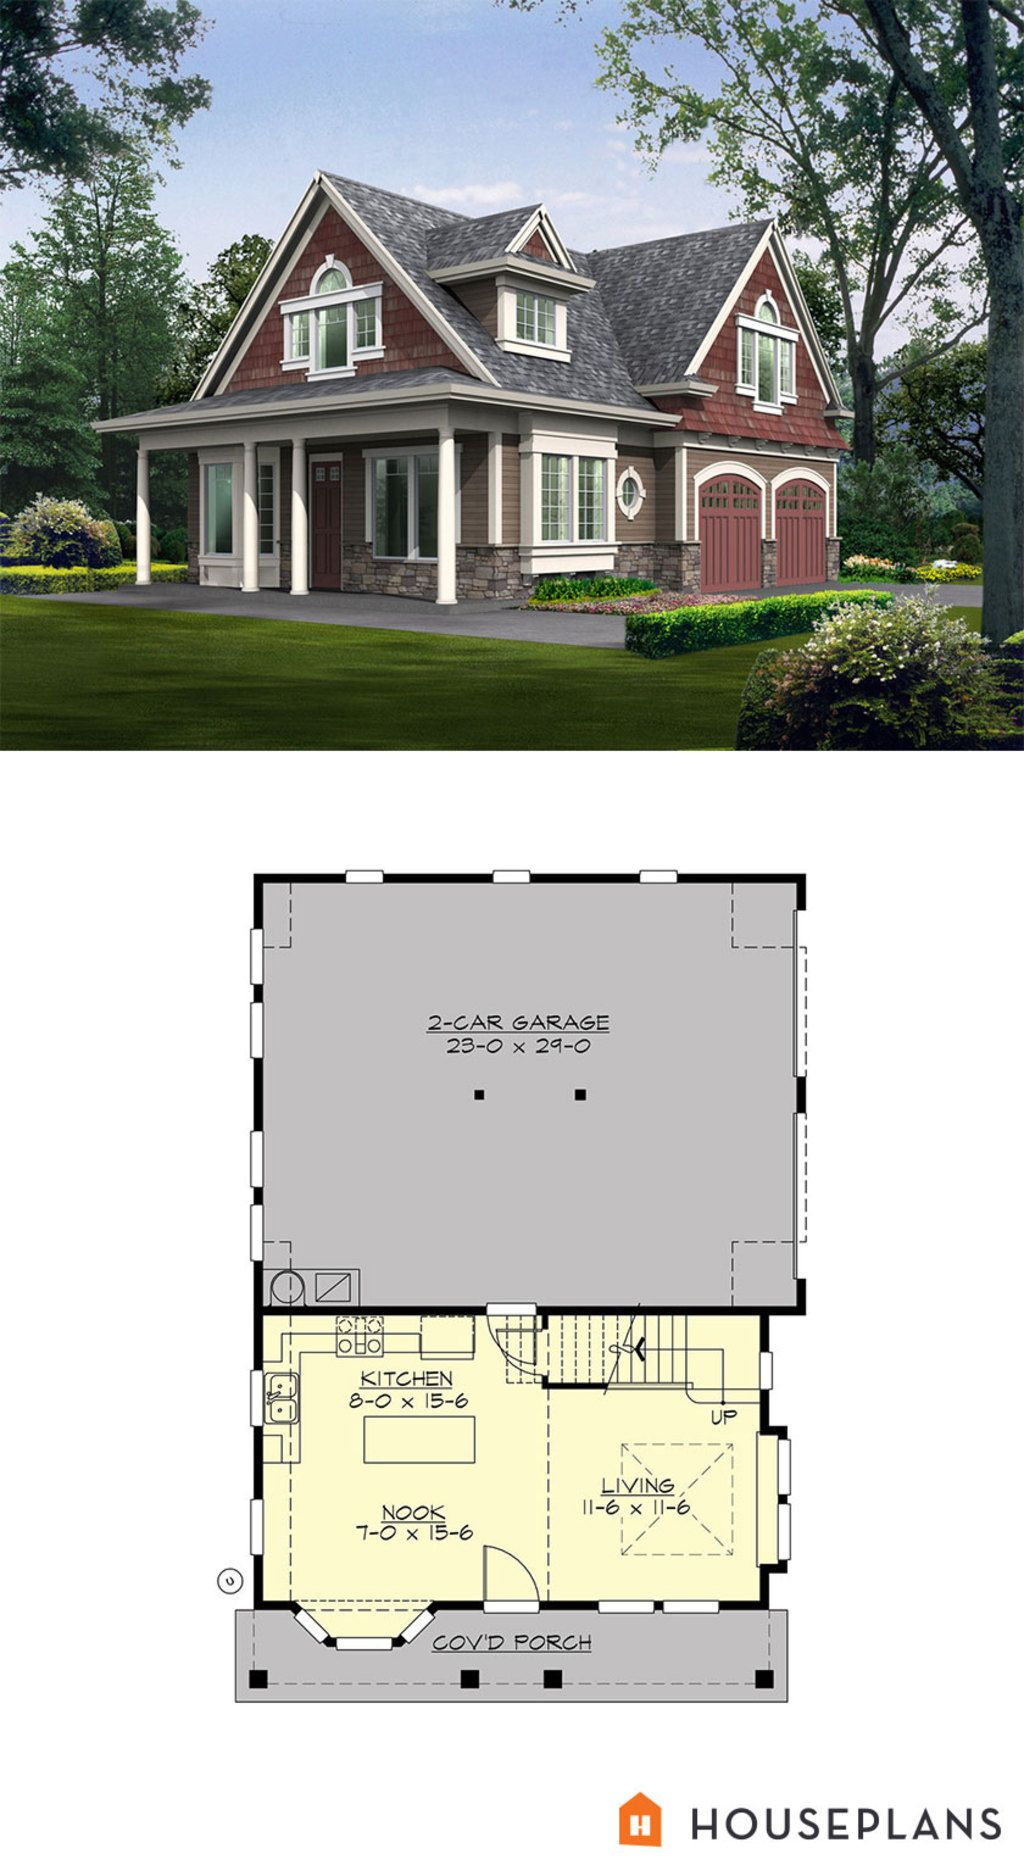 Cottage Style House Plan 2 Beds 2 Baths 1295 Sq/Ft Plan